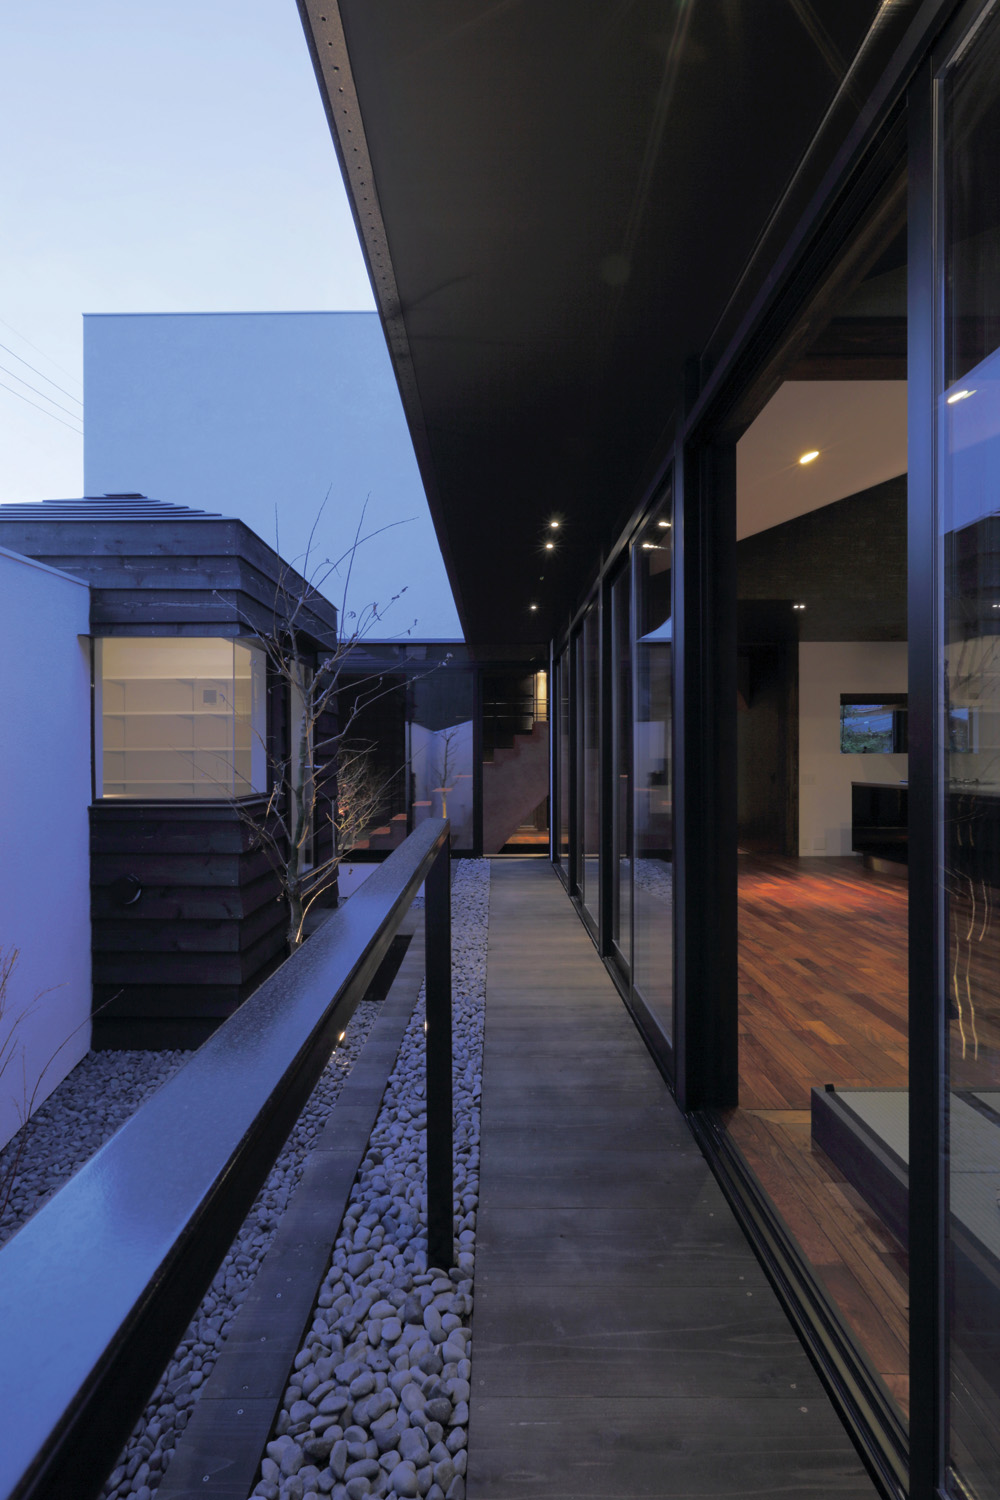 Traditional sliding doors ensure the elements can be enjoyed throughout the seasons